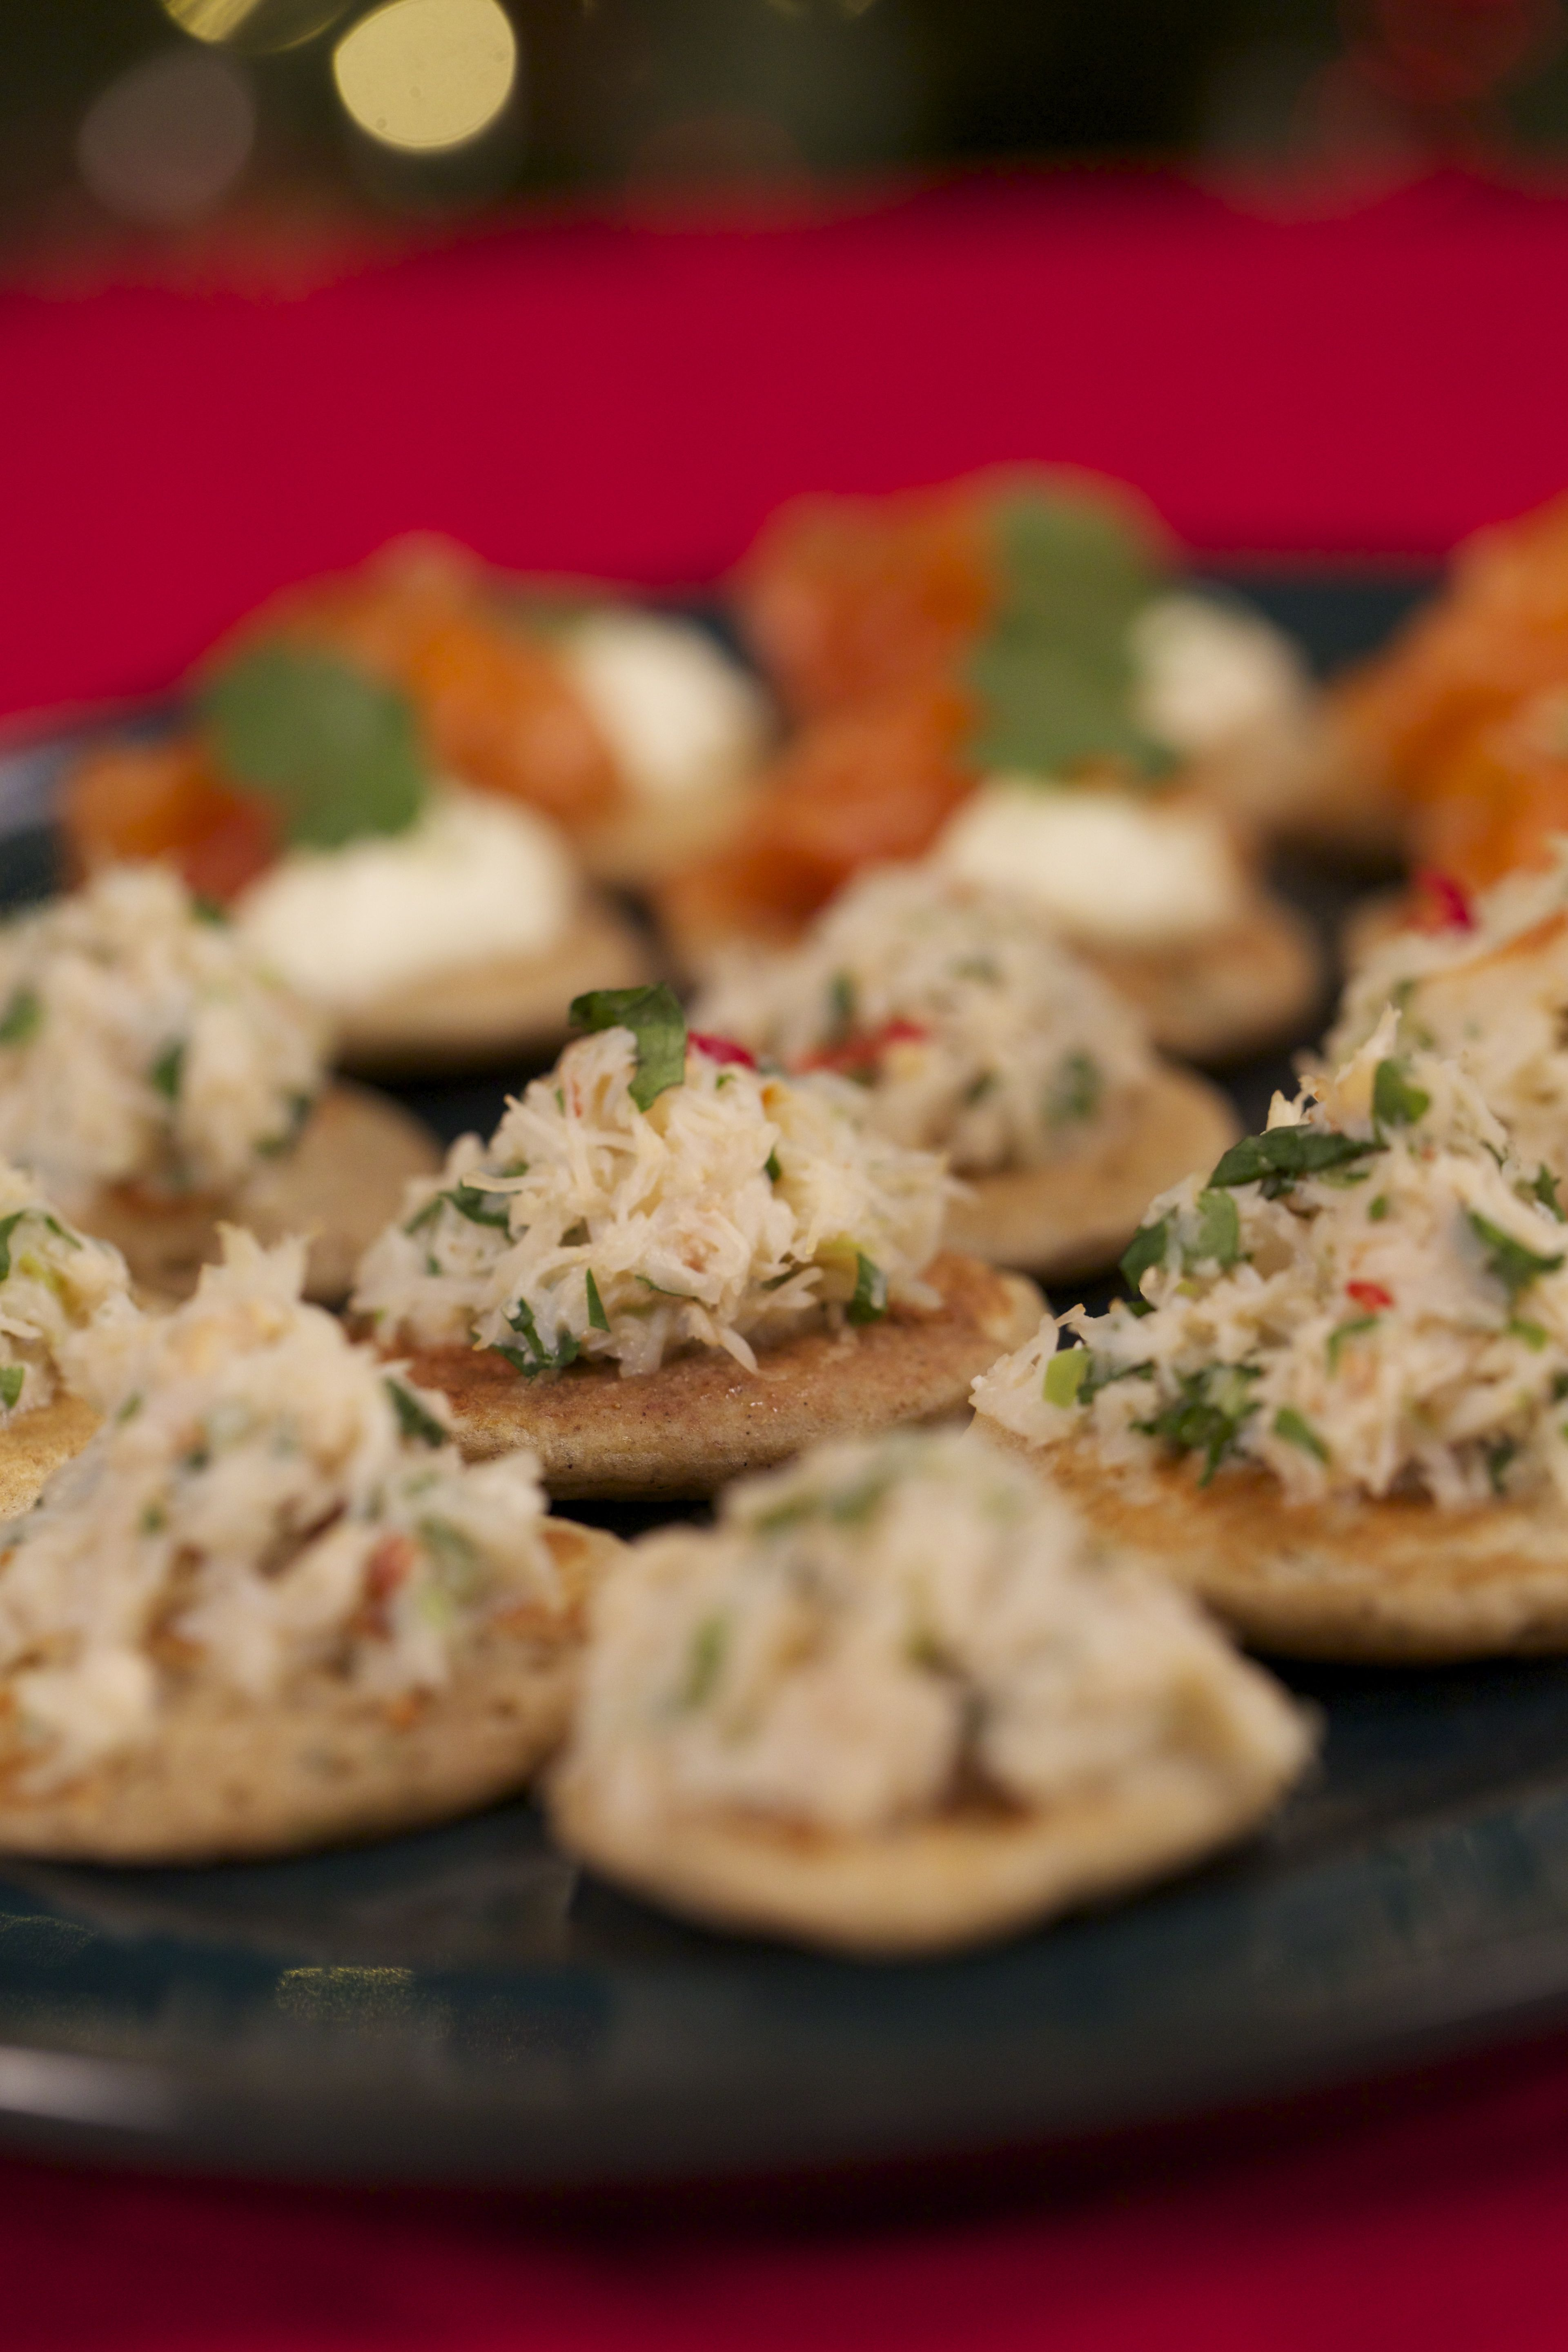 Reza mahammads spiced blinis jeni barnetts 12 chefs of christmas how to make the perfect spiced blinis with smoked salmon and tom yum coke by reza mahammad on food network uk forumfinder Choice Image